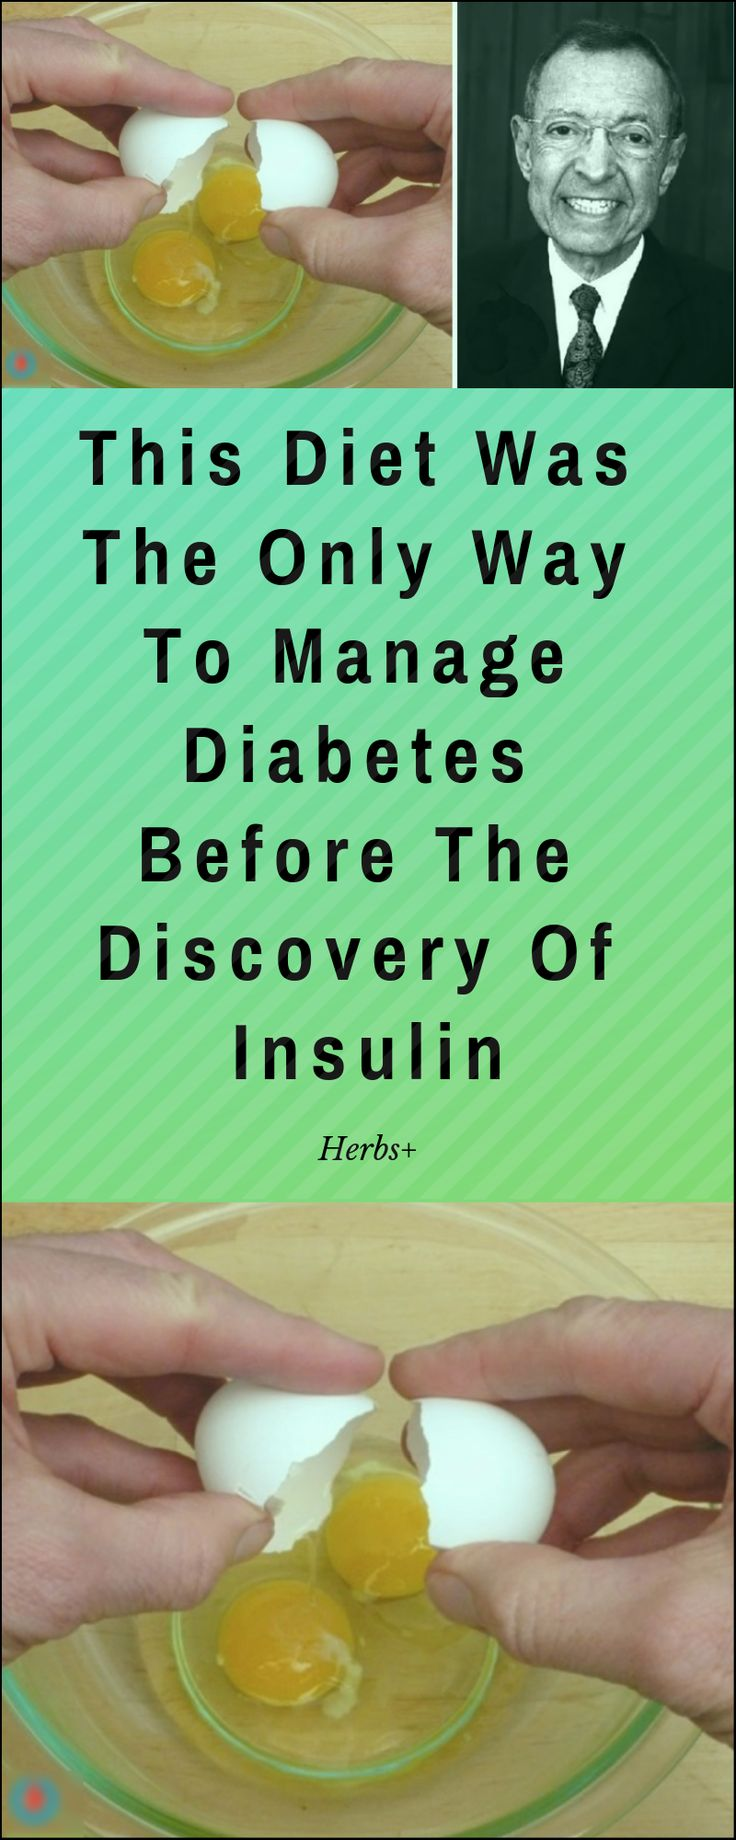 This Diet Was The Only Way To Manage Diabetes Before The Discovery Of Insulin